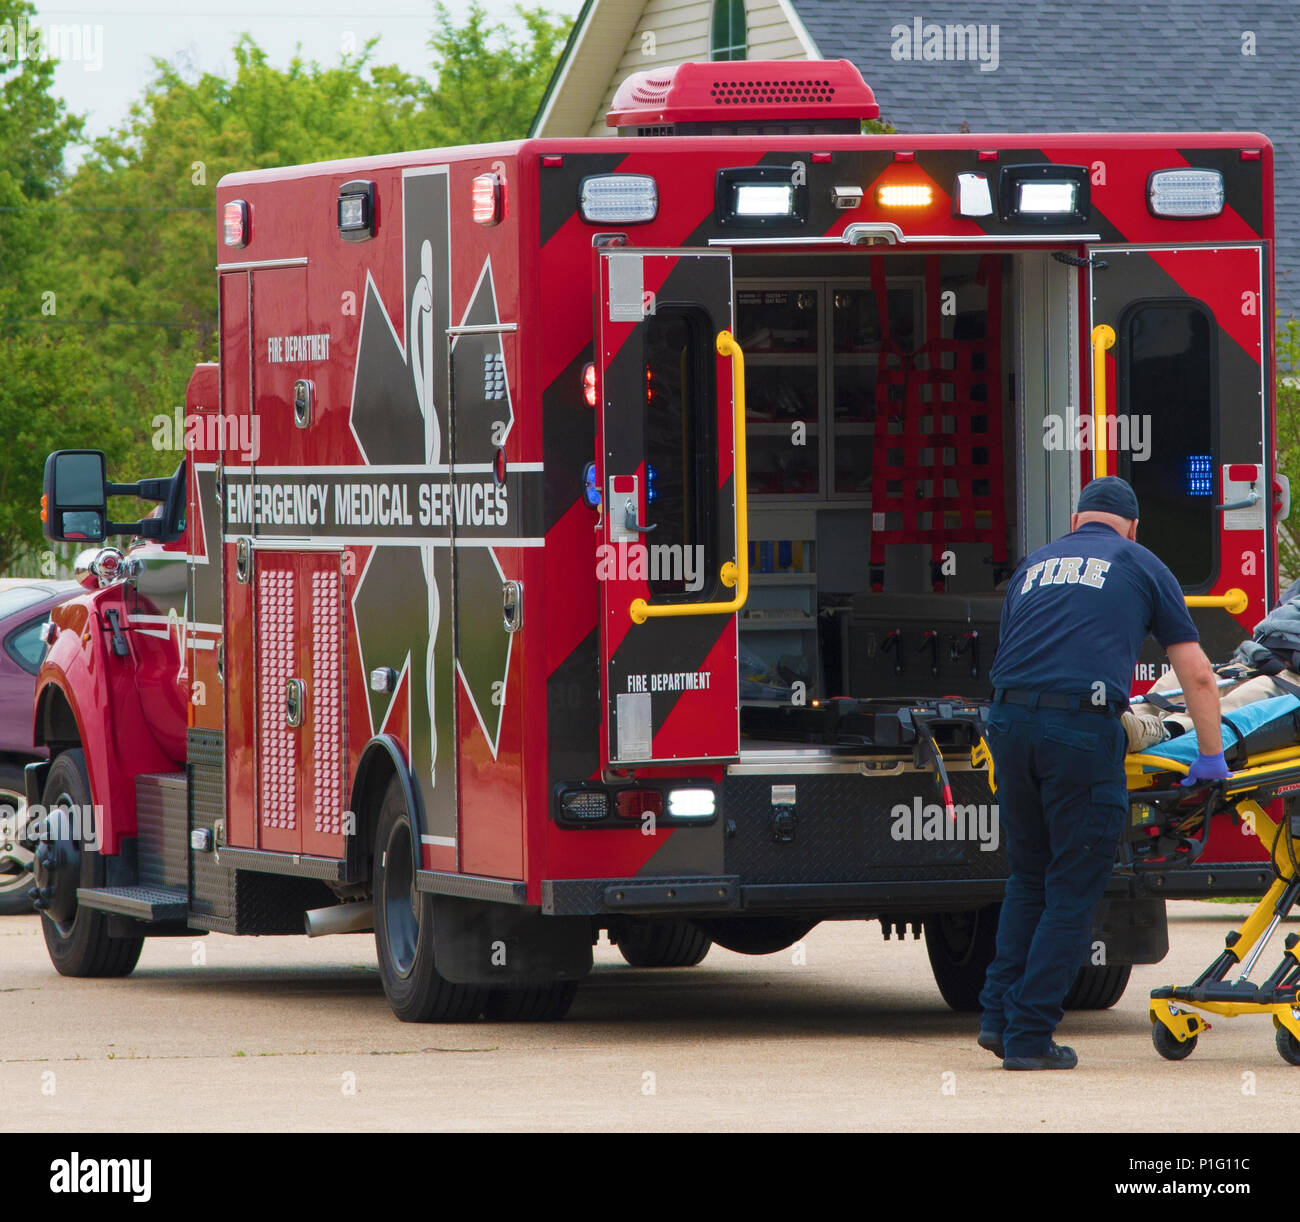 BOSSIER CITY, LA., USA - APRIL 10, 2017: An EMT prepares to place a patient in an ambulance. - Stock Image